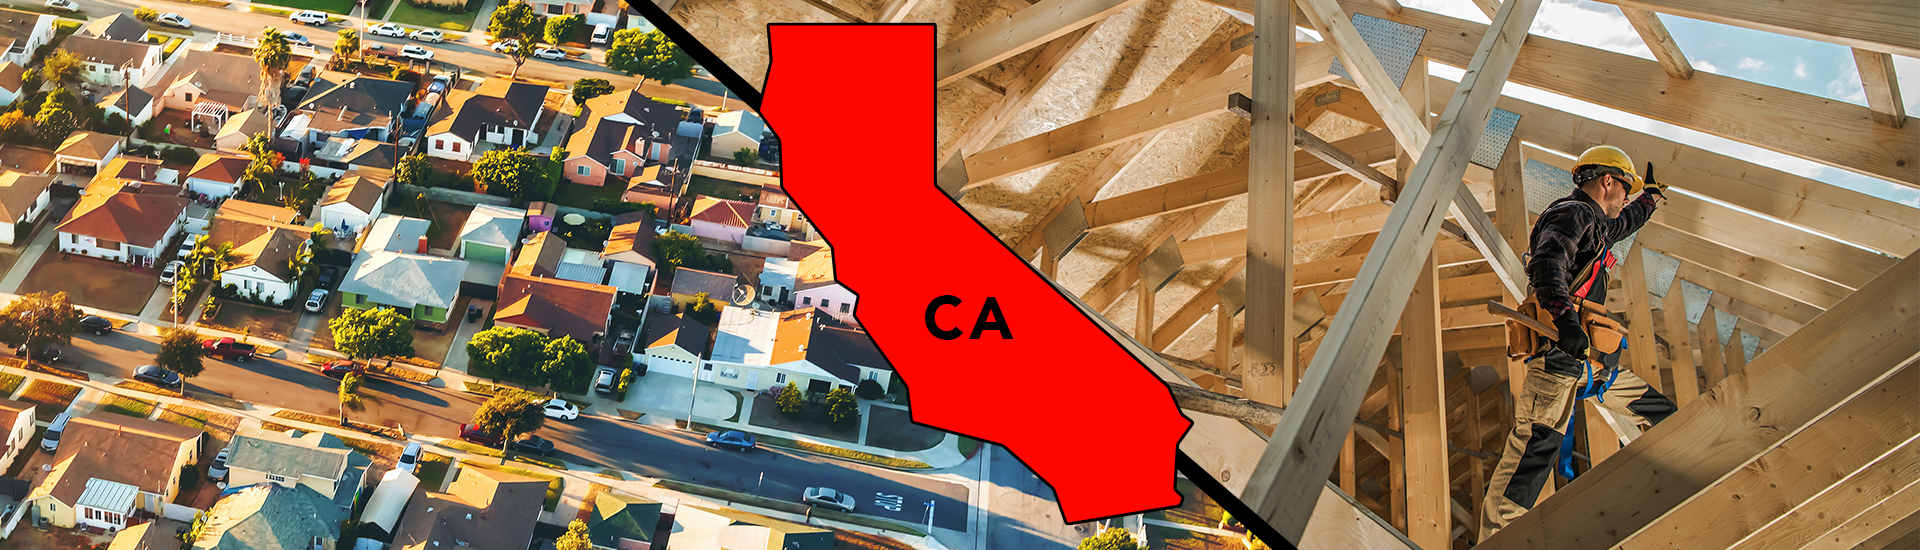 This is an image of CA